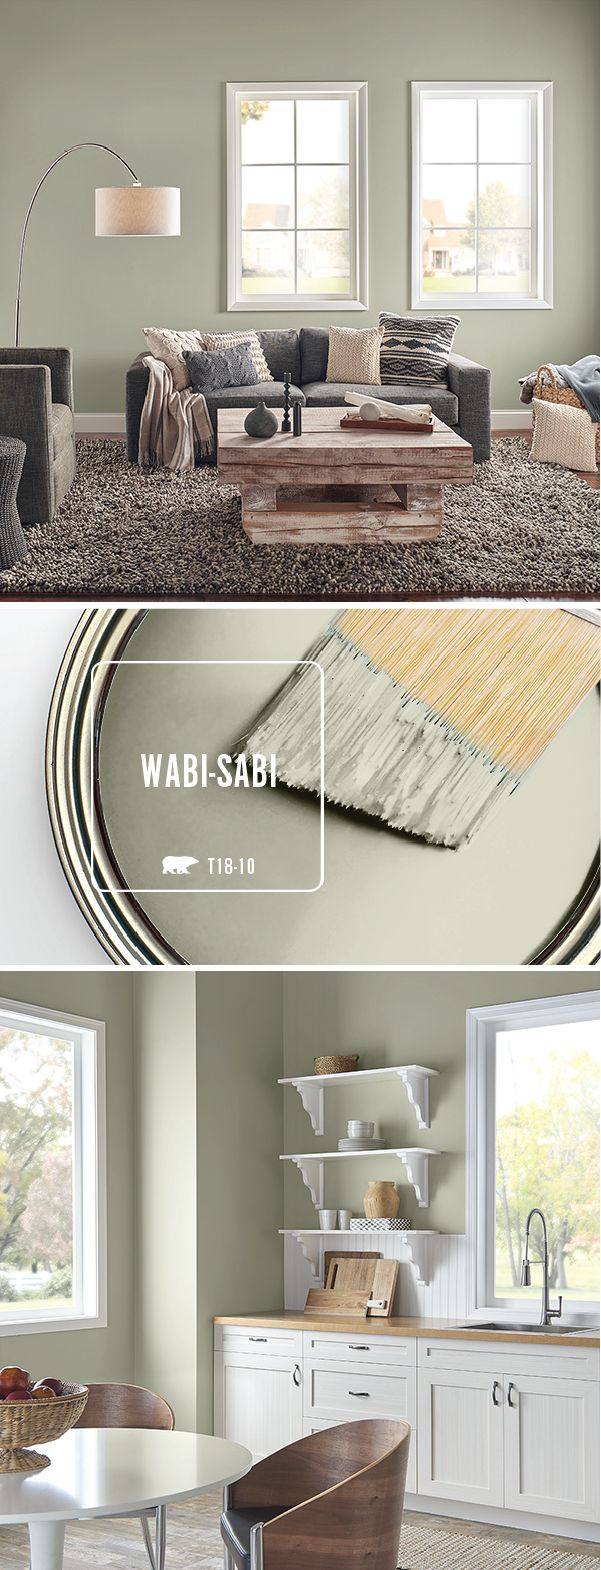 Use a fresh coat of behr paint in wabi sabi in every room of your home when paired with dark gray and natural wood accents this light green paint color